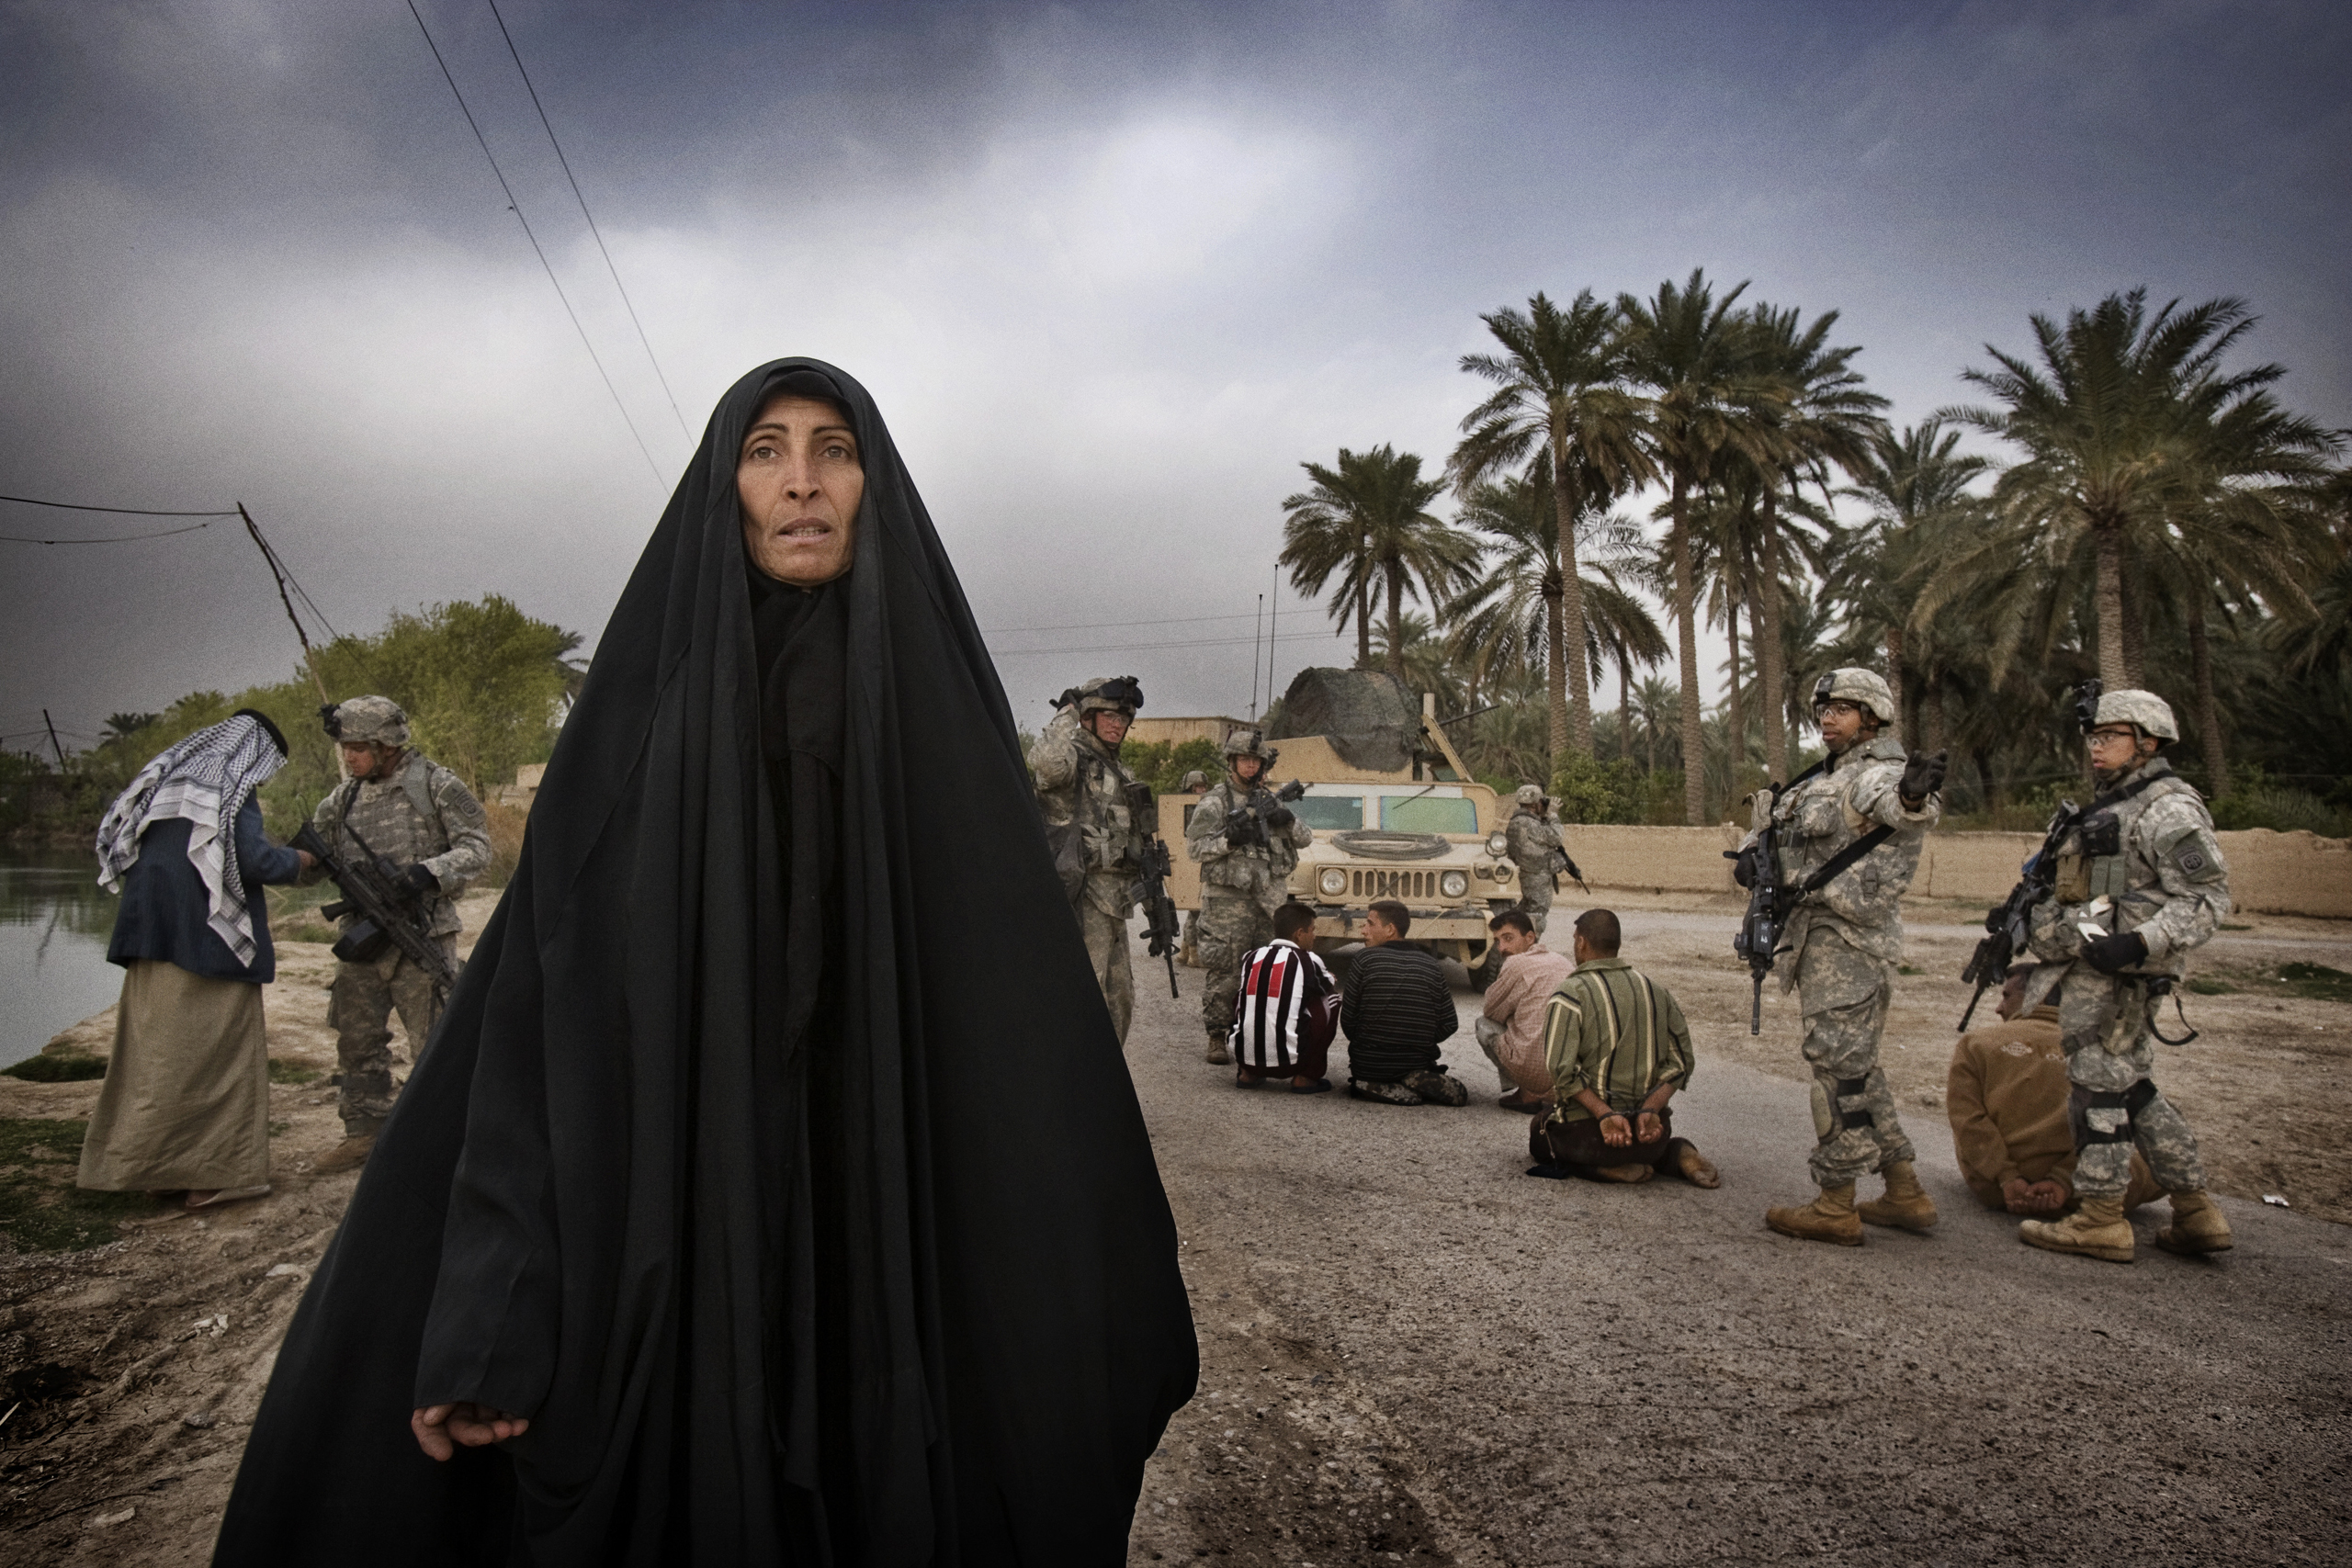 U.S. soldiers from A Troop 5th Squadron 73rd Cavalry detain suspected insurgent sympathizers after killing a militant caught laying a roadside bomb on the outskirts of Baquba. Women from the village begged for the release of the men as U.S. soldiers led them away, Zurah, Iraq, March 15, 2007.